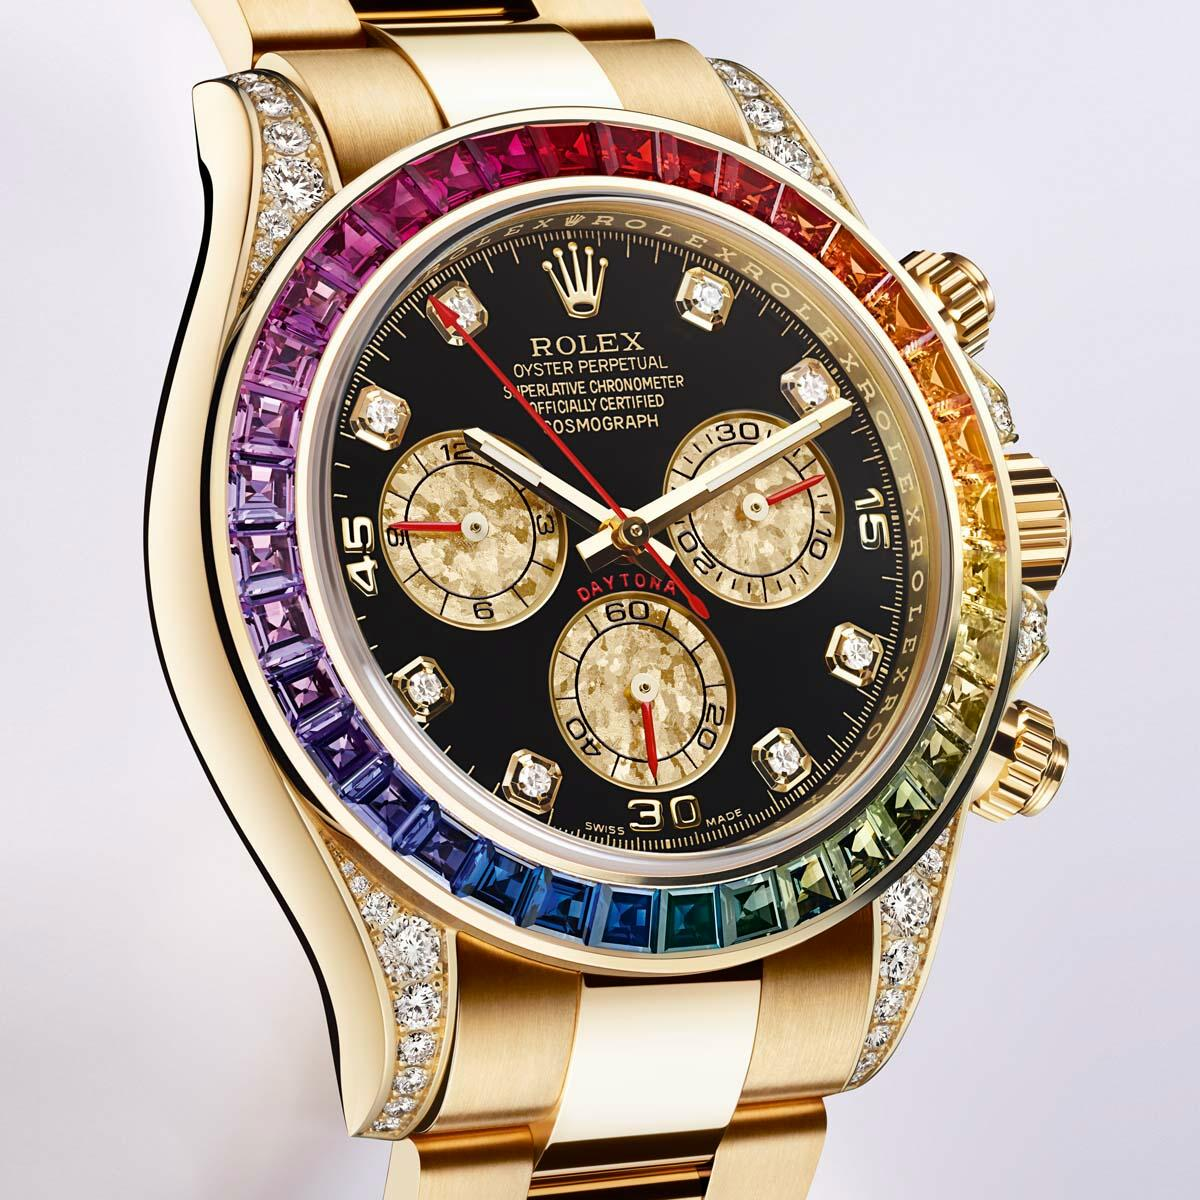 Photo Of Rolex Gold Watch